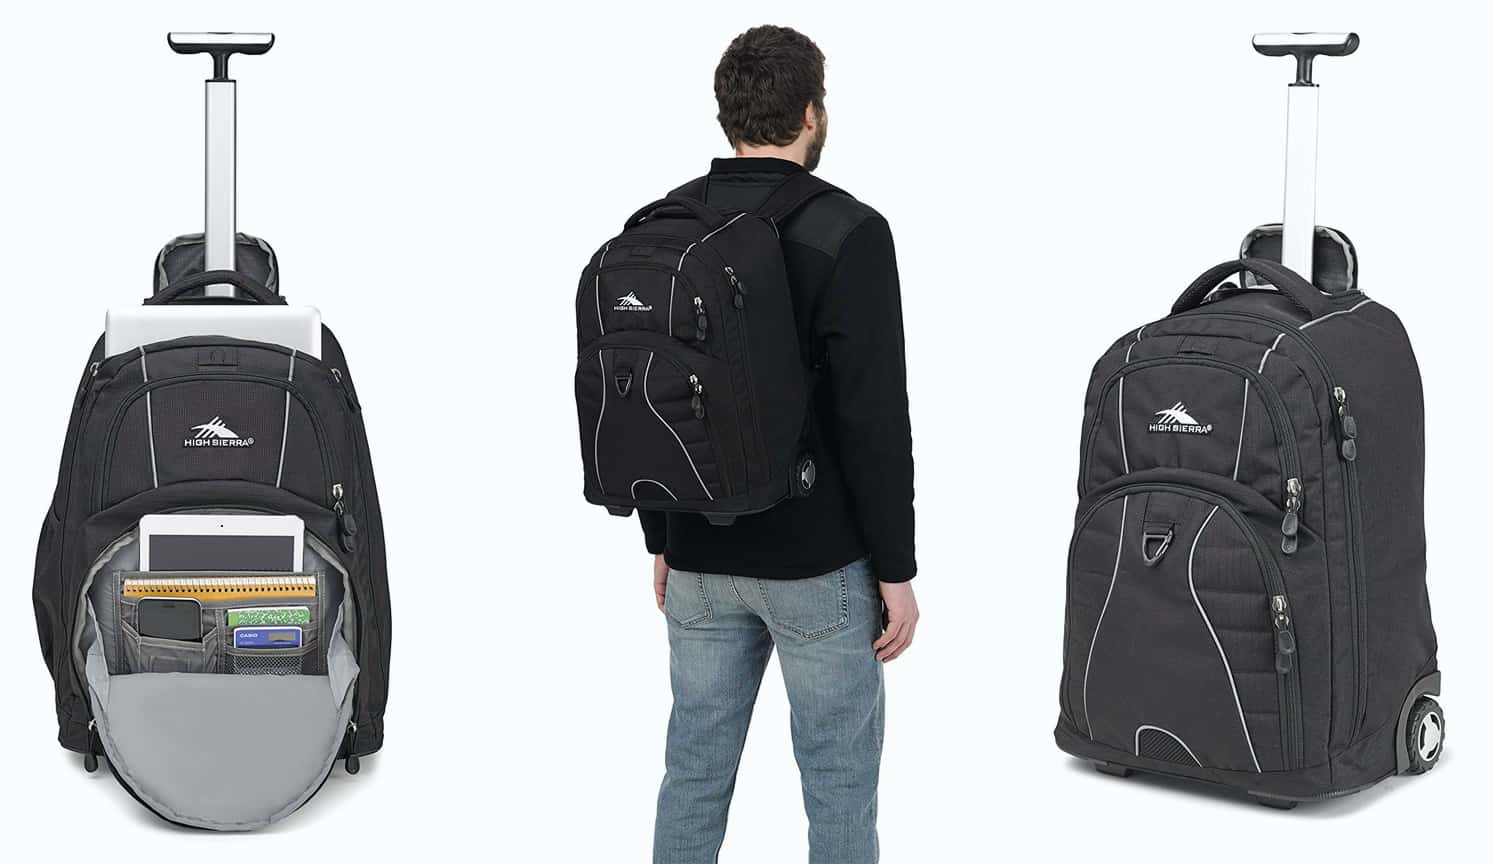 Wheeled Laptop Backpack as the first related product of the Best Laptop Backpack